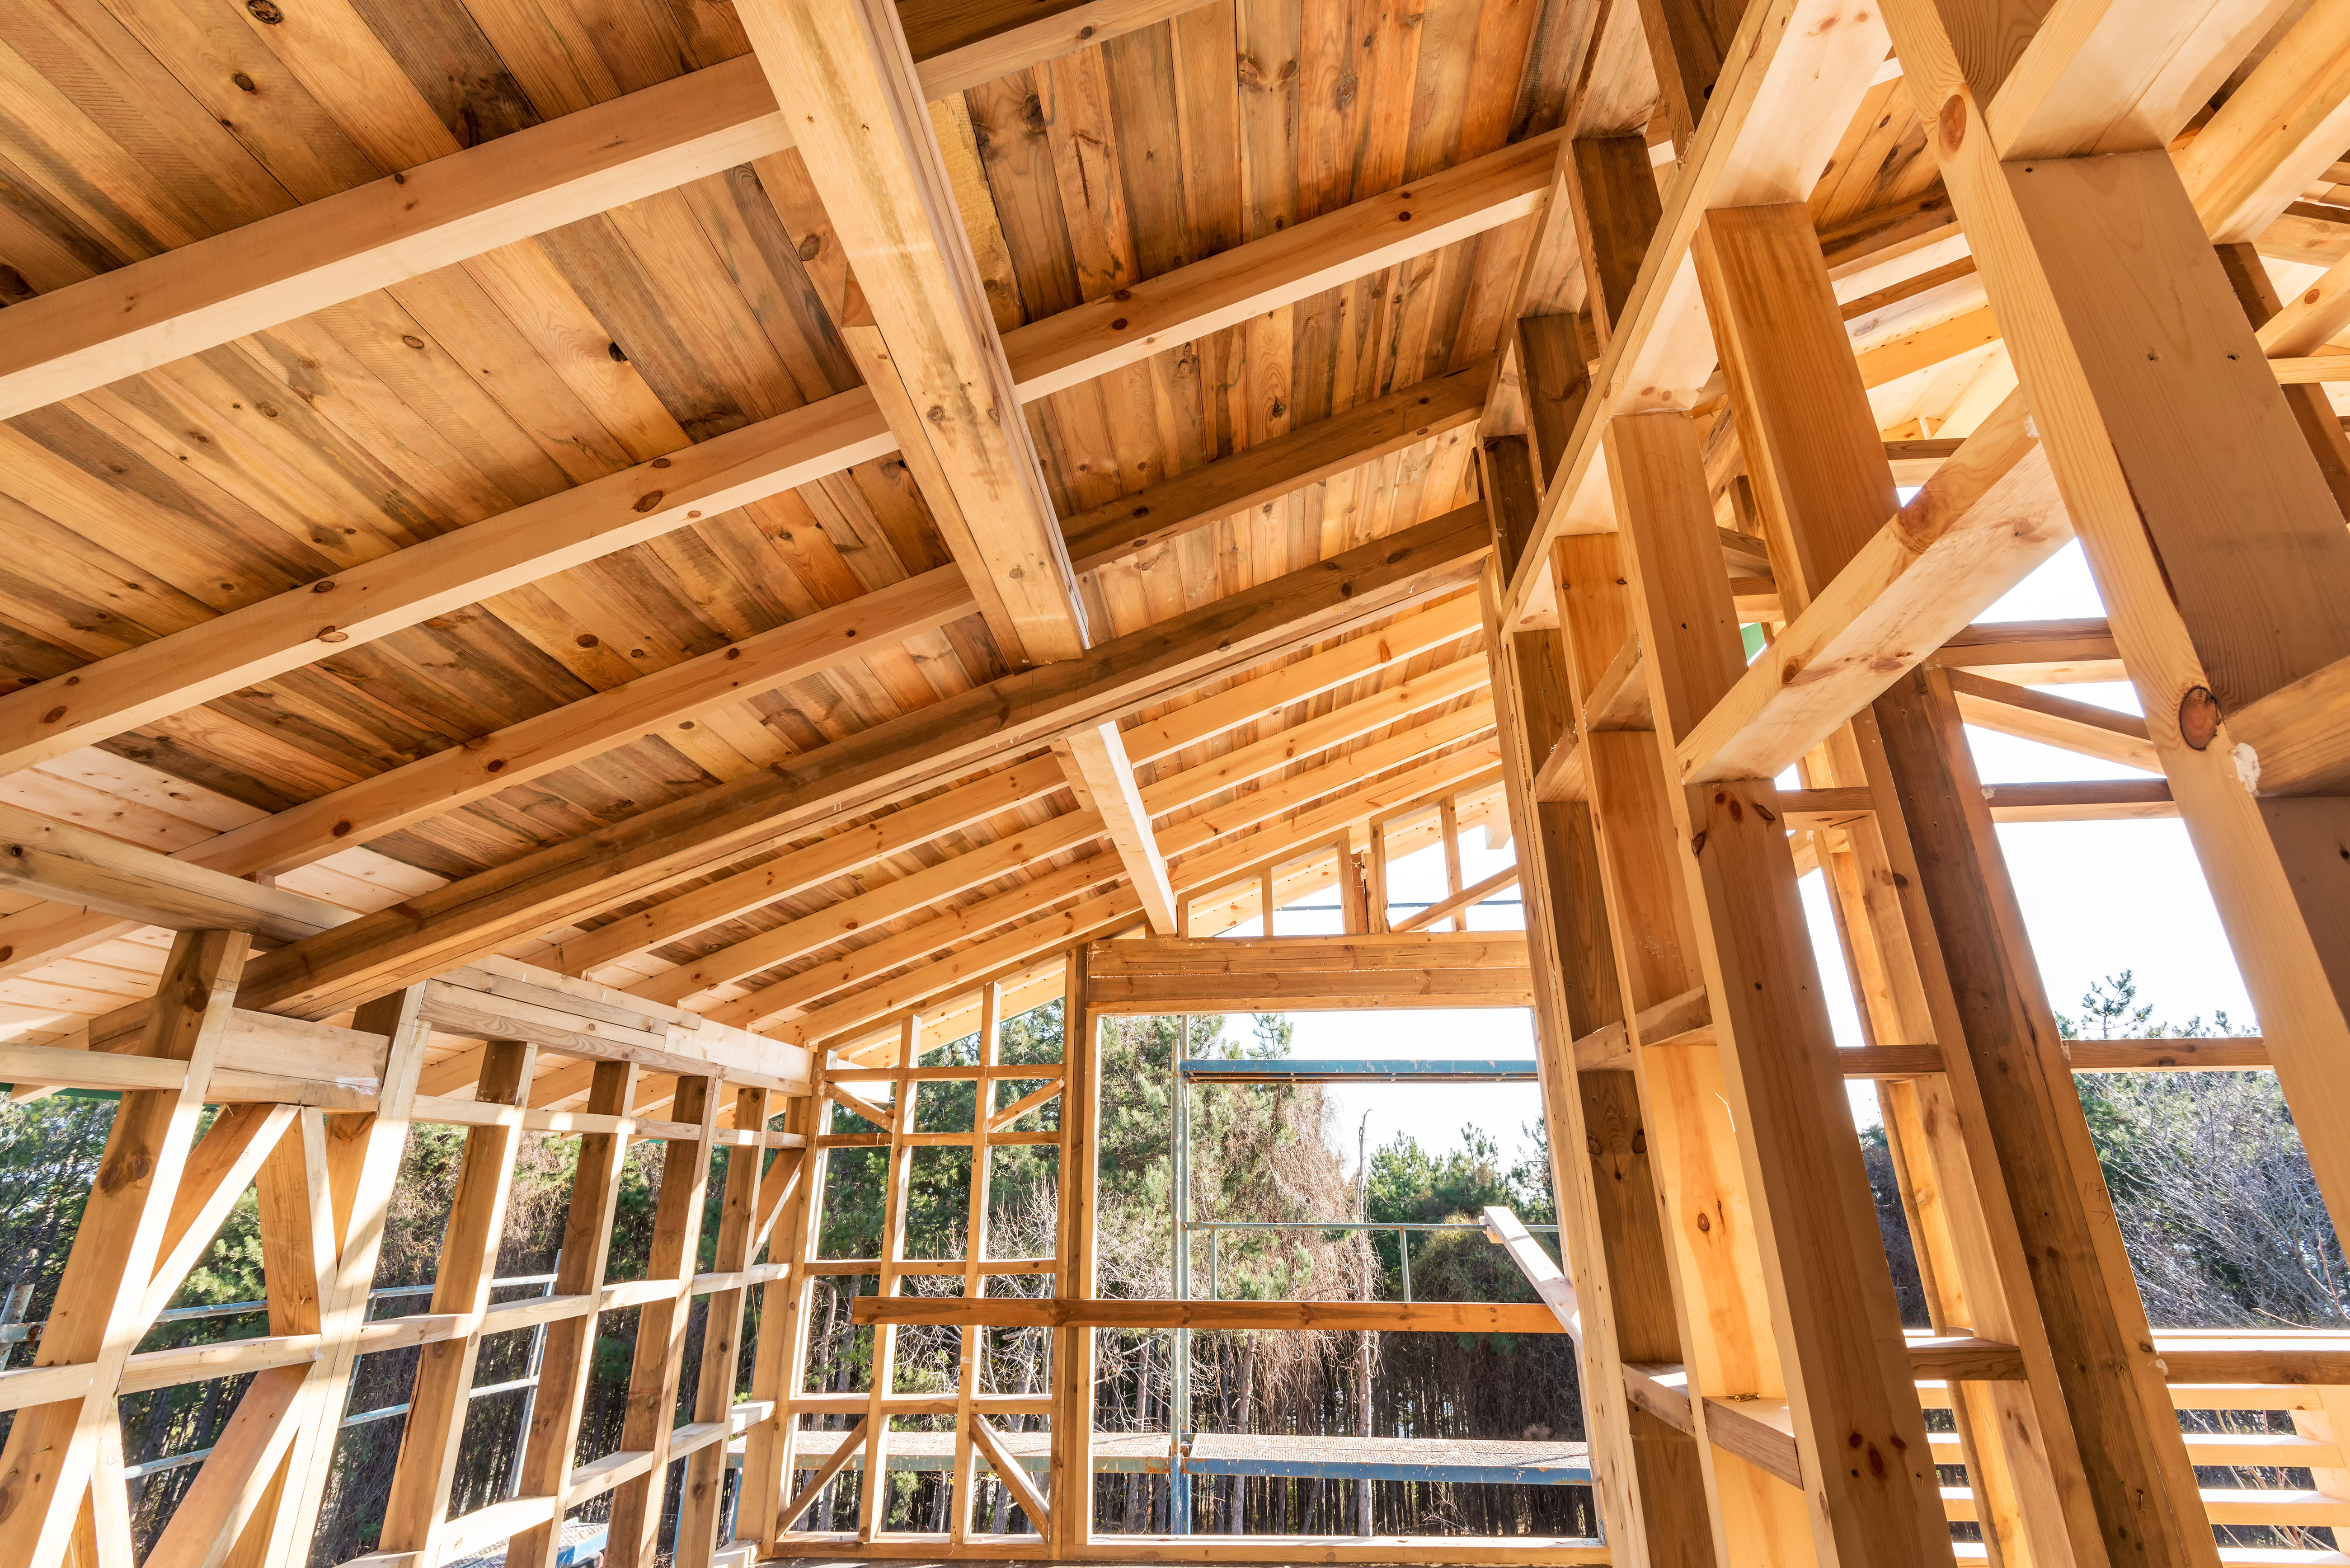 wooden ceiling structure